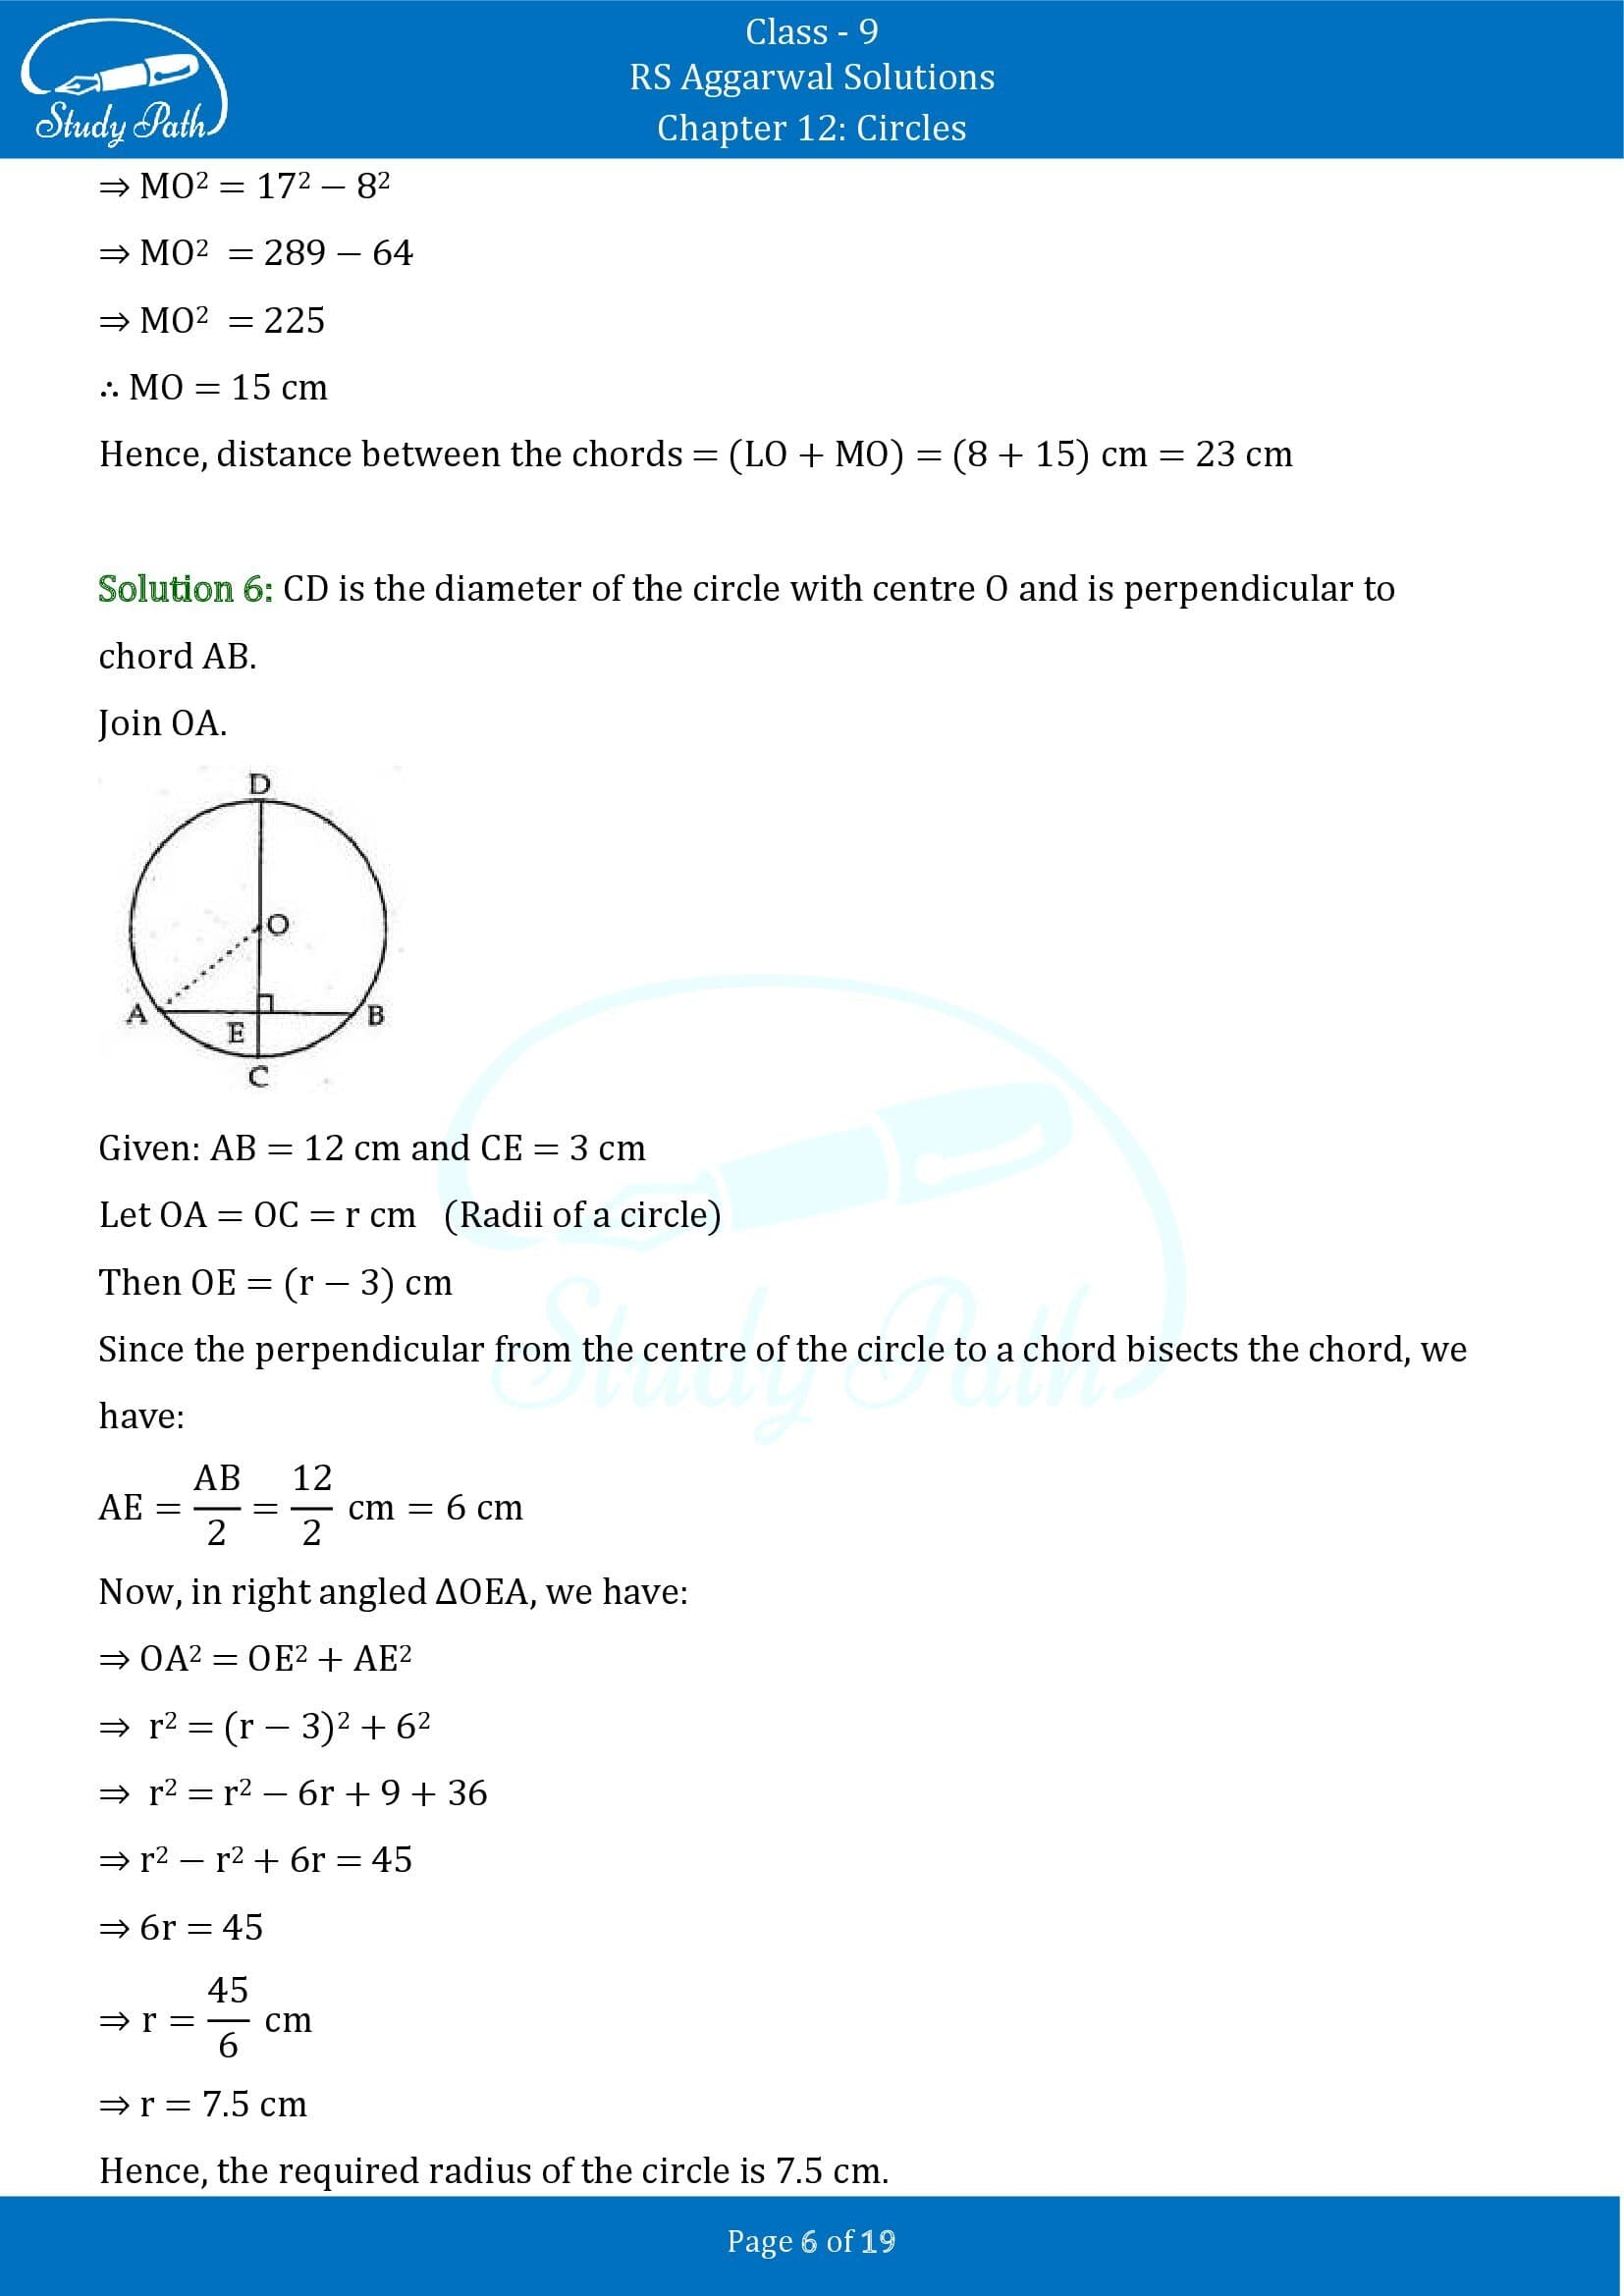 RS Aggarwal Solutions Class 9 Chapter 12 Circles Exercise 12A 00006